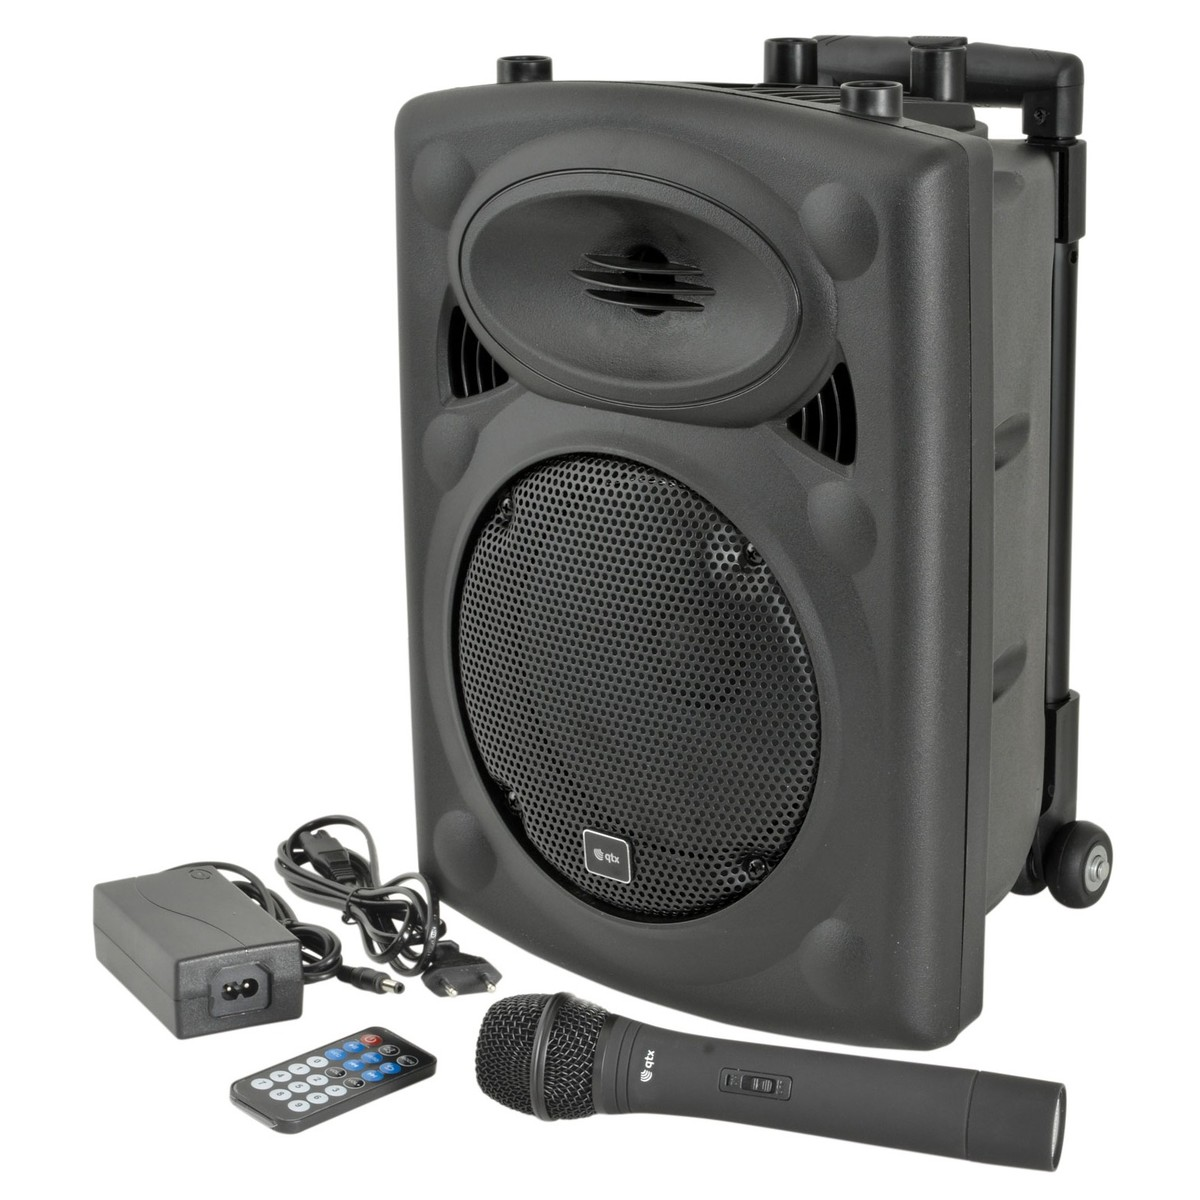 Draagbare Luidspreker Qtx Qr8 Portable Pa Speaker With Wireless Microphone